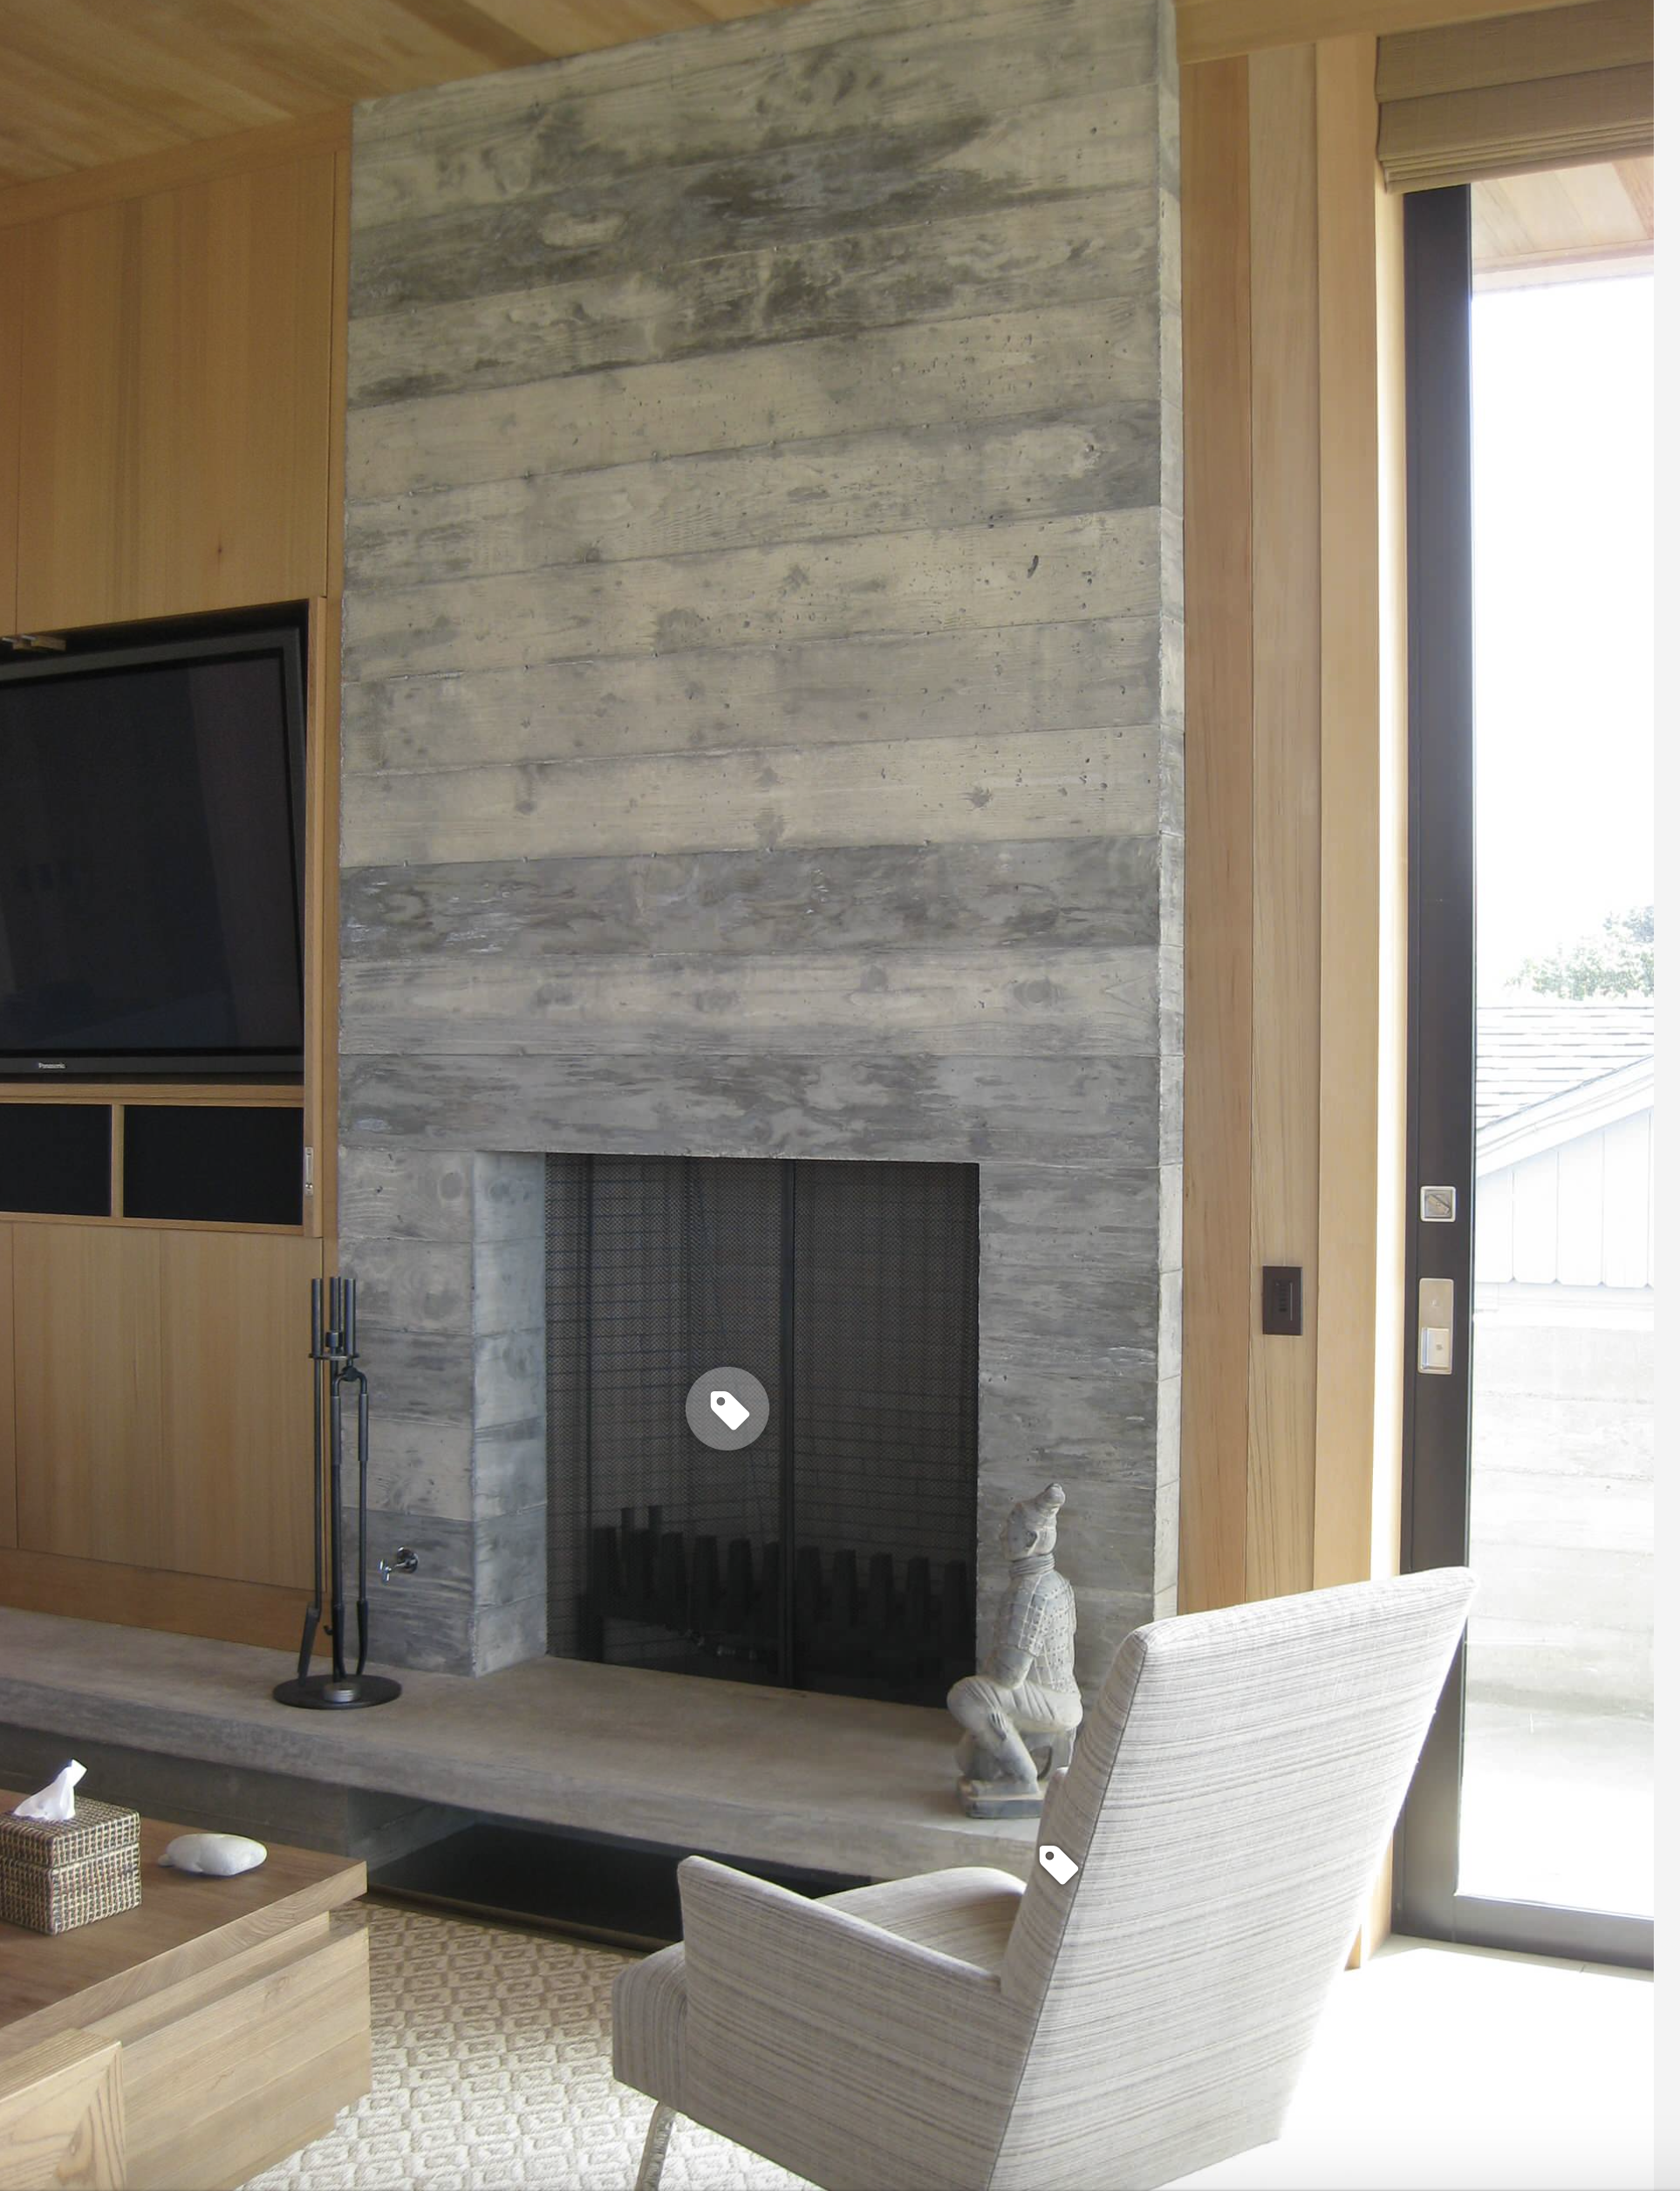 Fireplace Opening Cover Inspirational Fireplace and Tv Камин